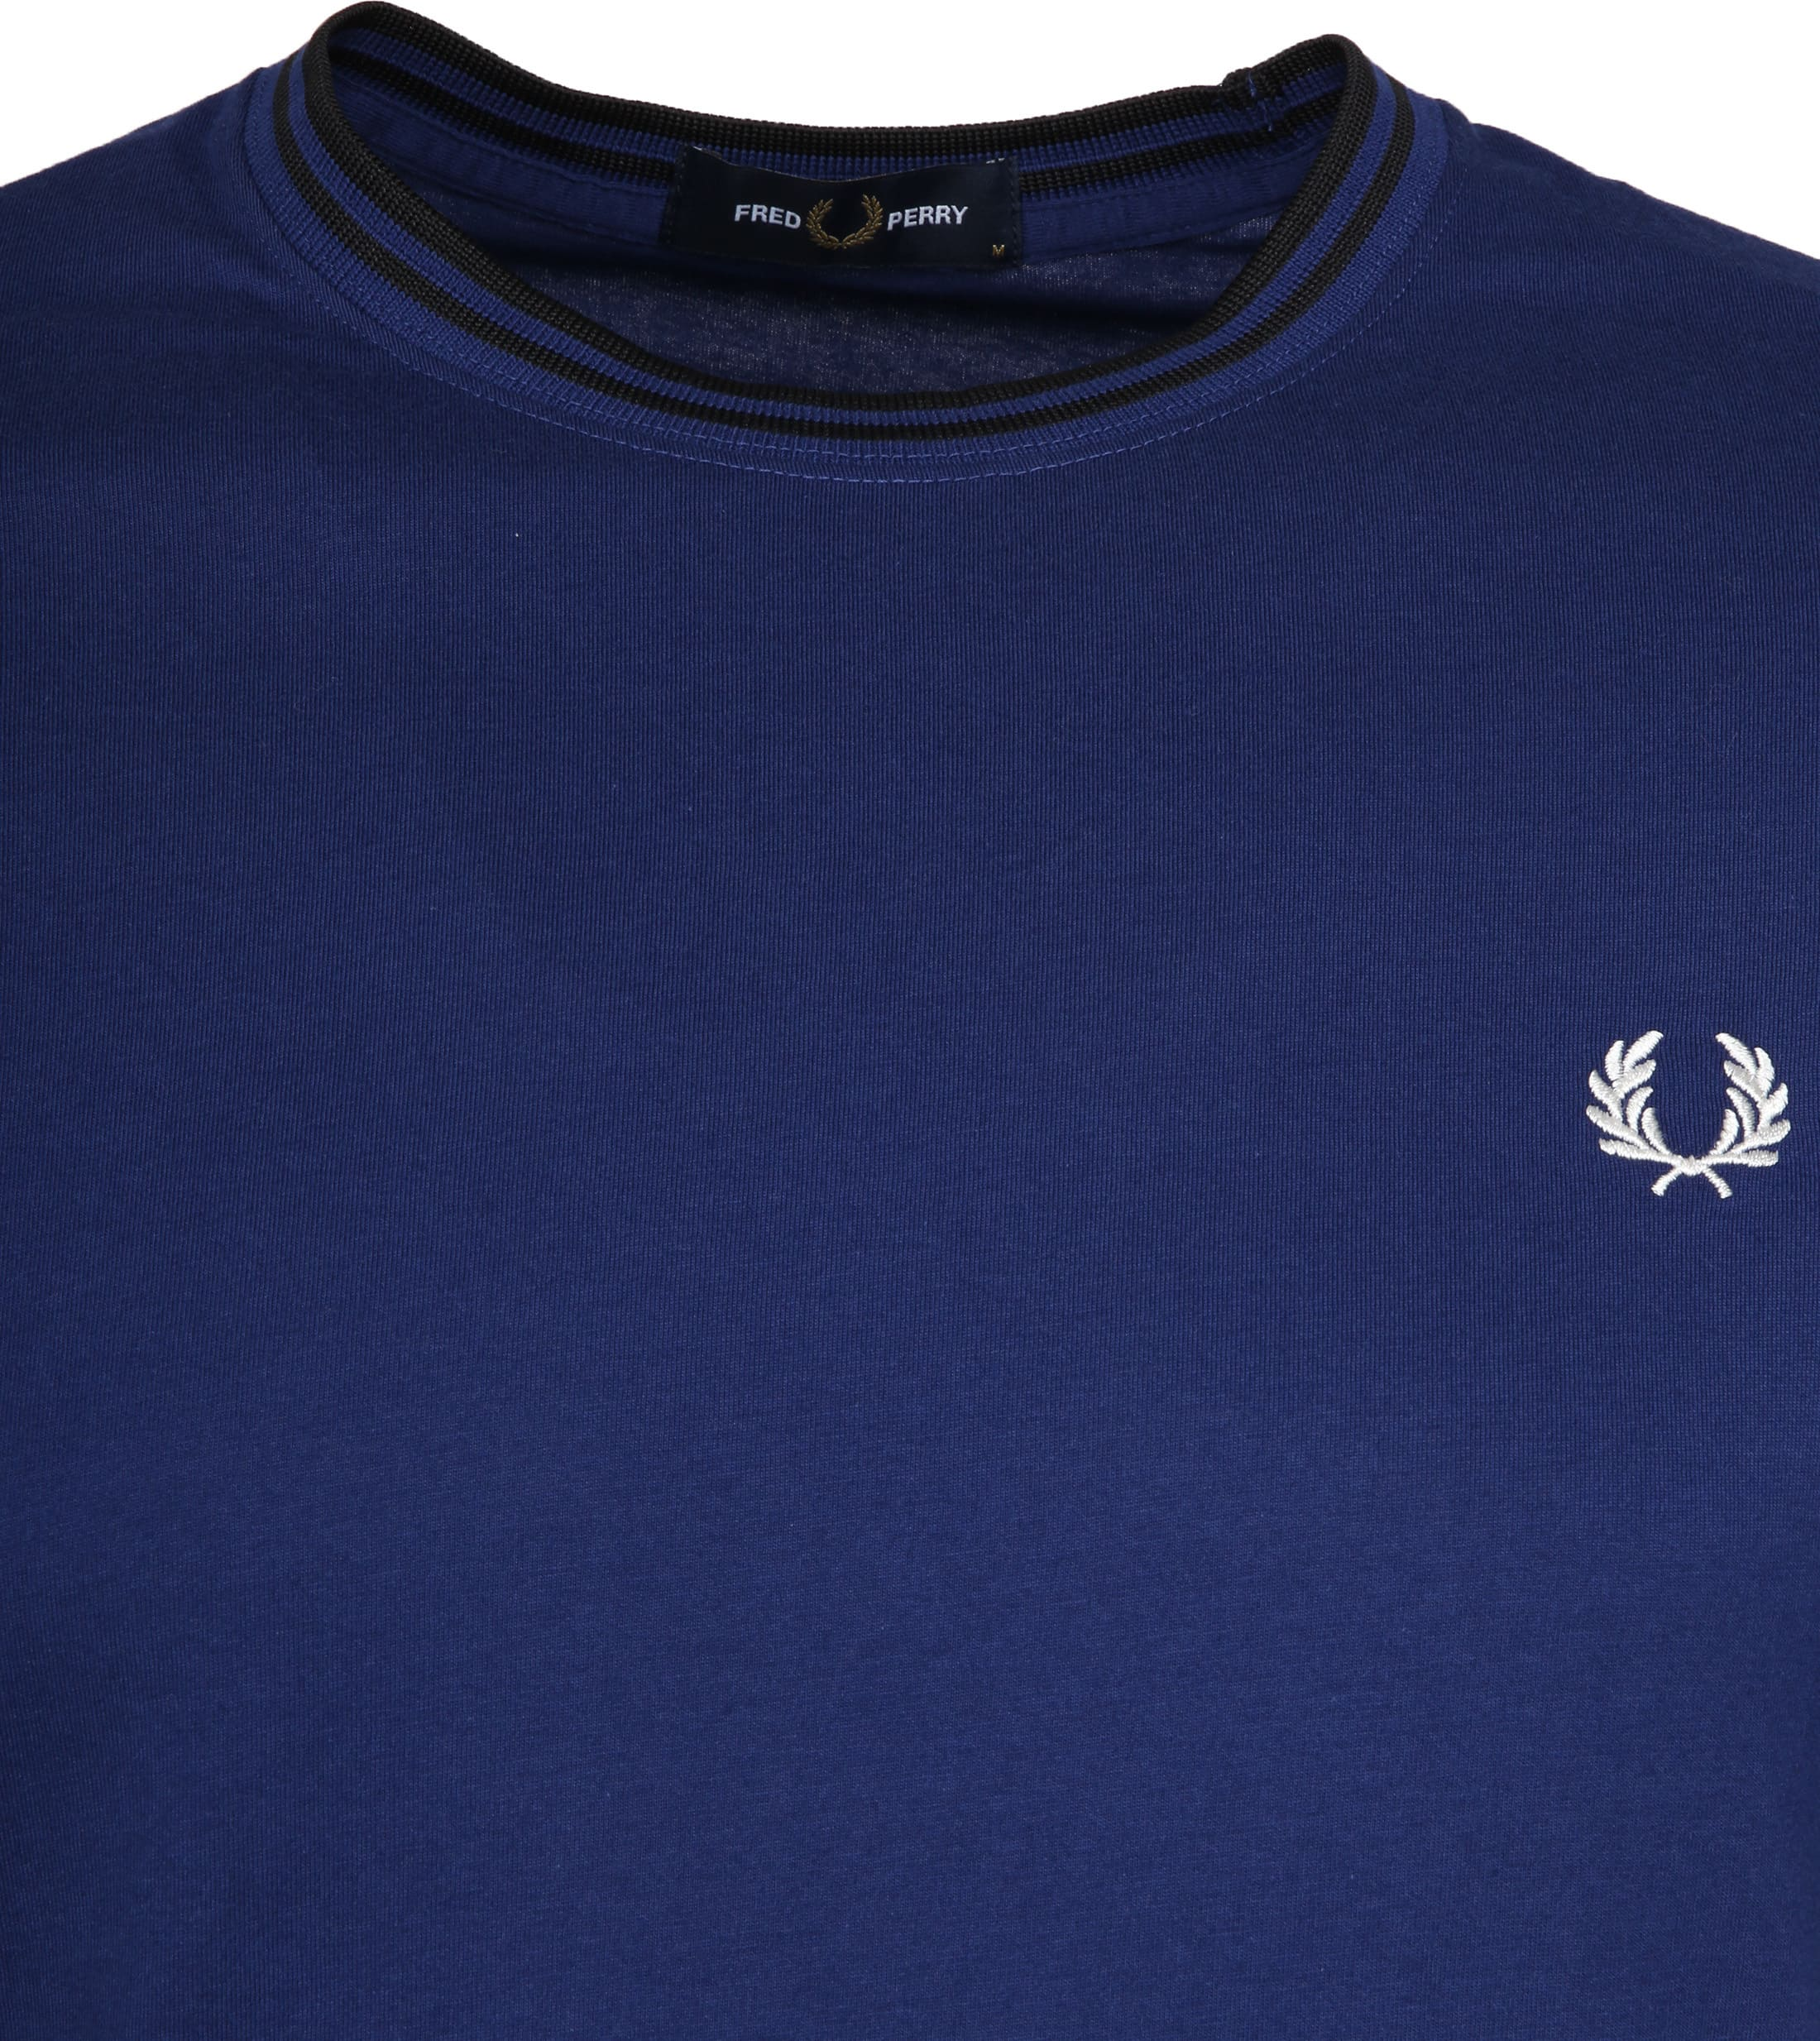 Fred Perry Twin Tipped T-shirt Blau foto 1